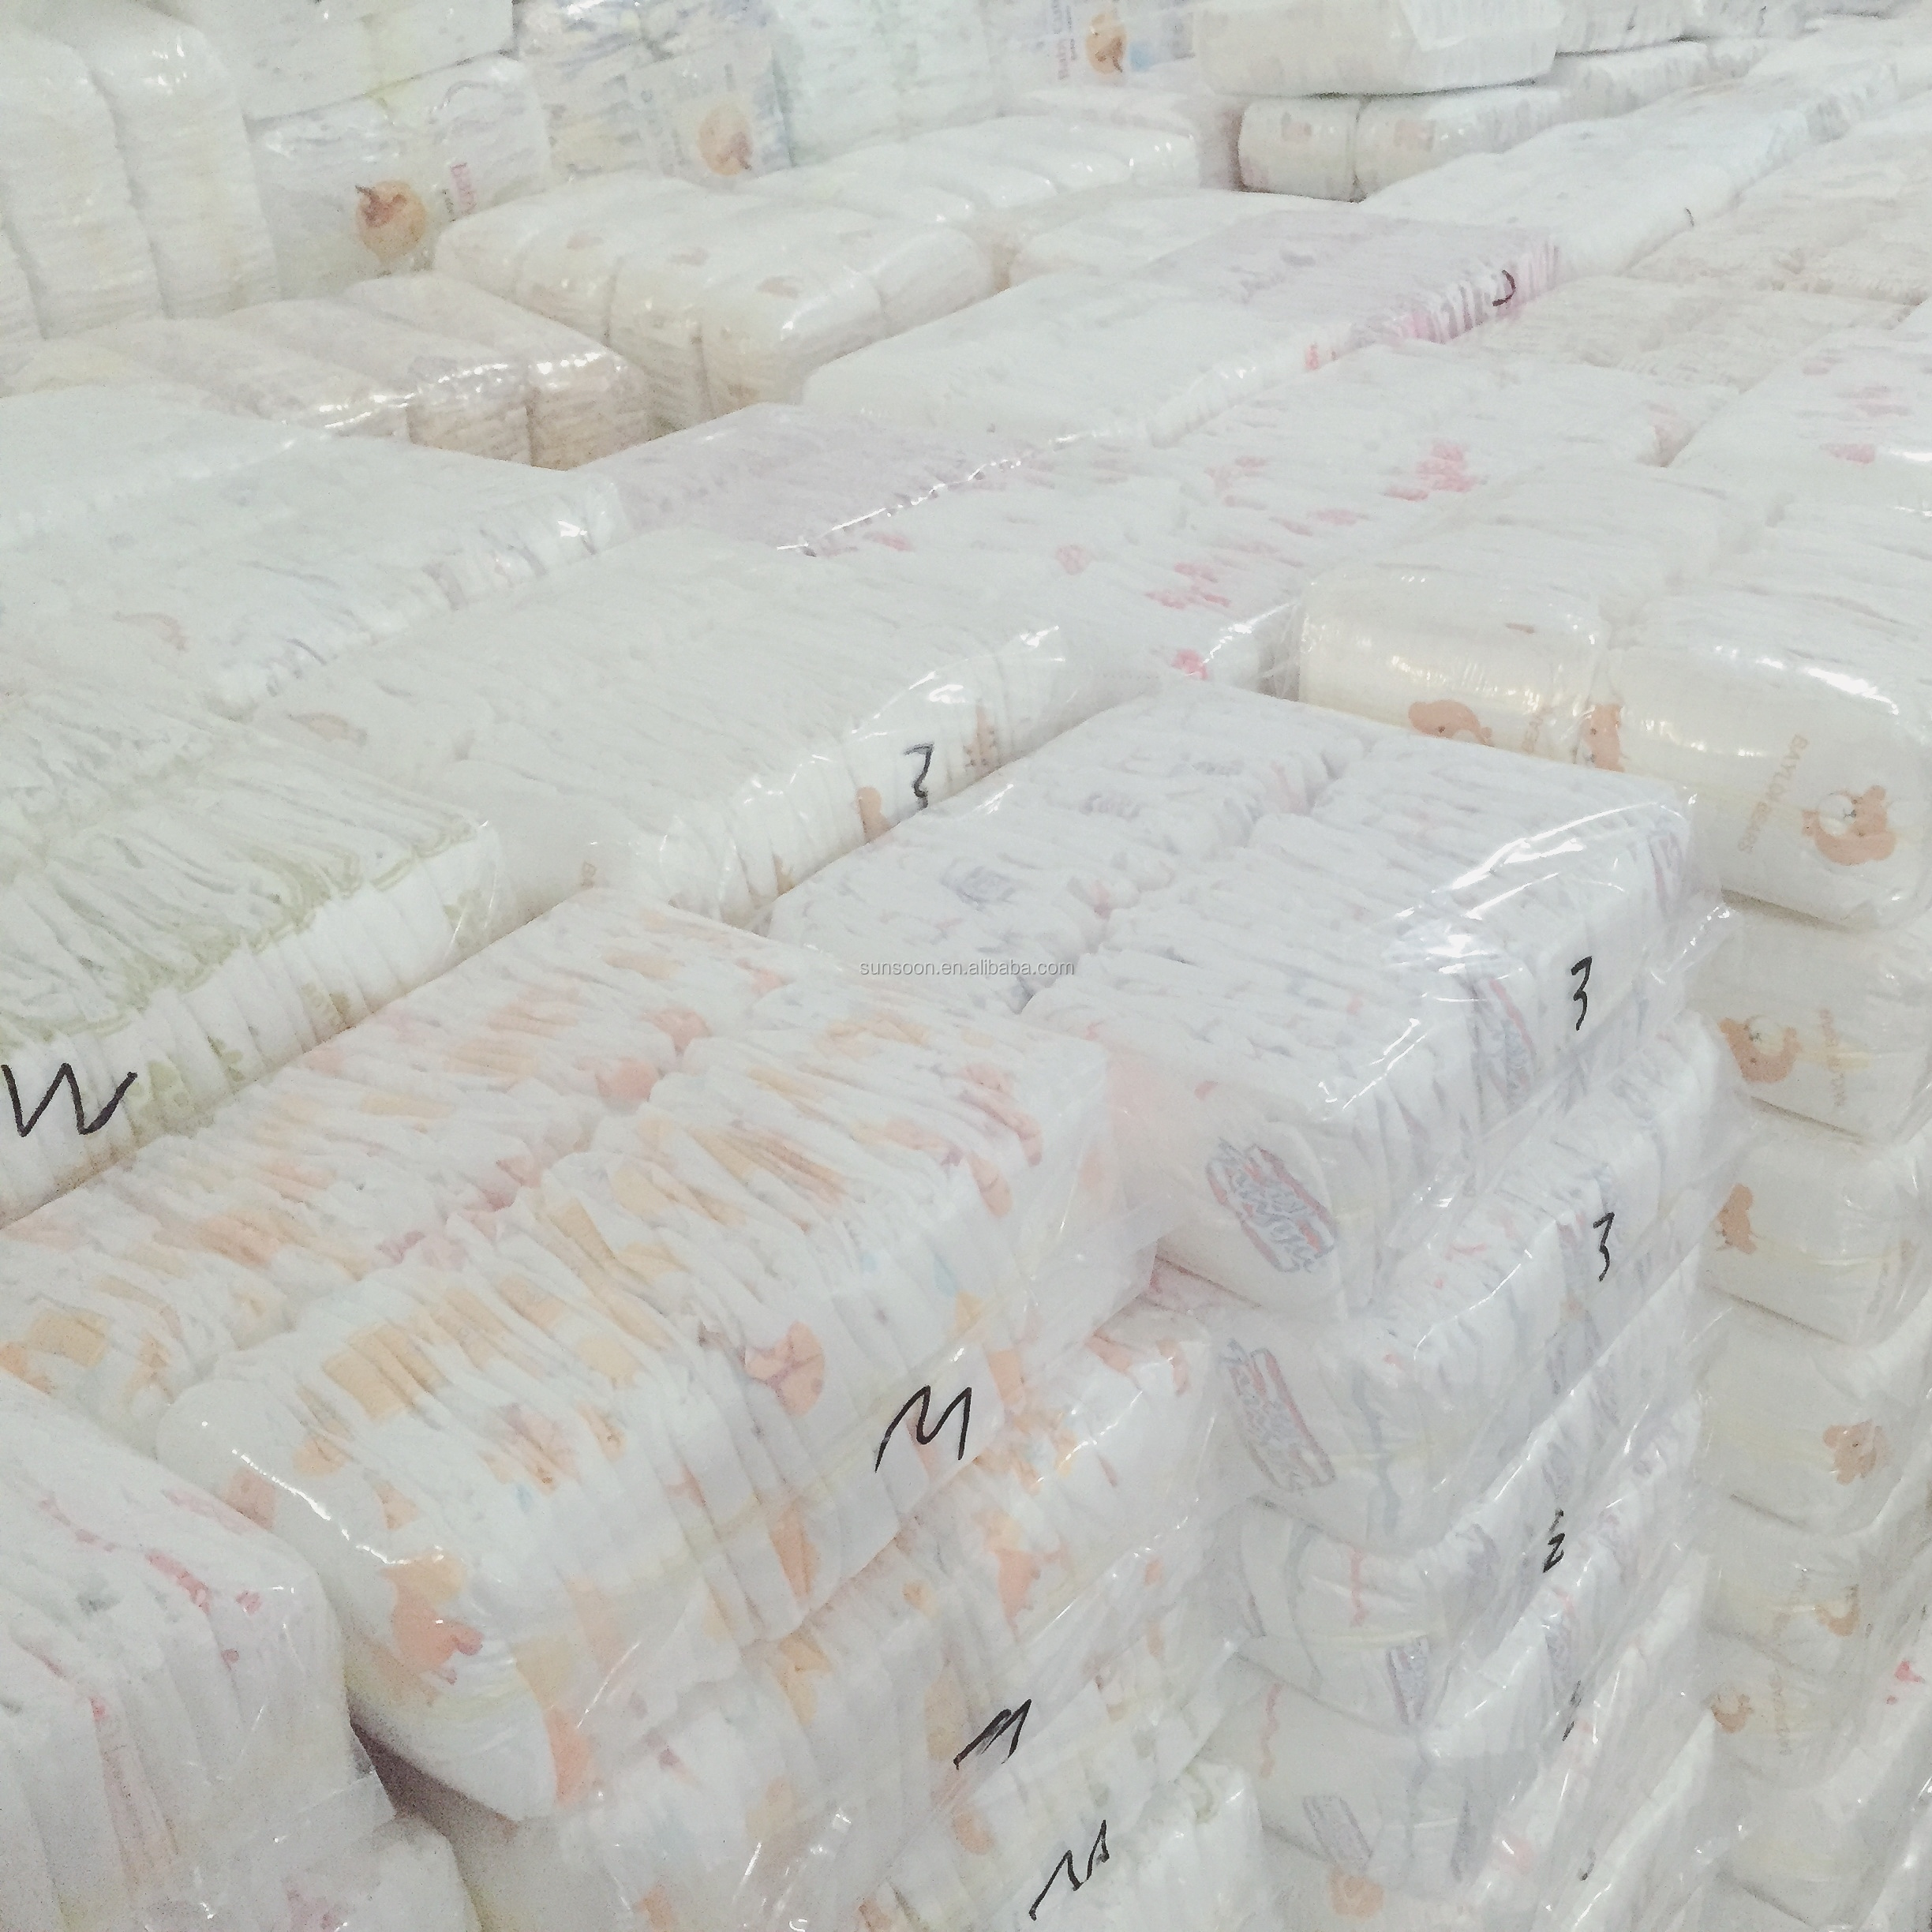 Mass stock B Grade baby diaper low price usable wholesale rejected baby diapers in stocklots rejected grade b baby diapers